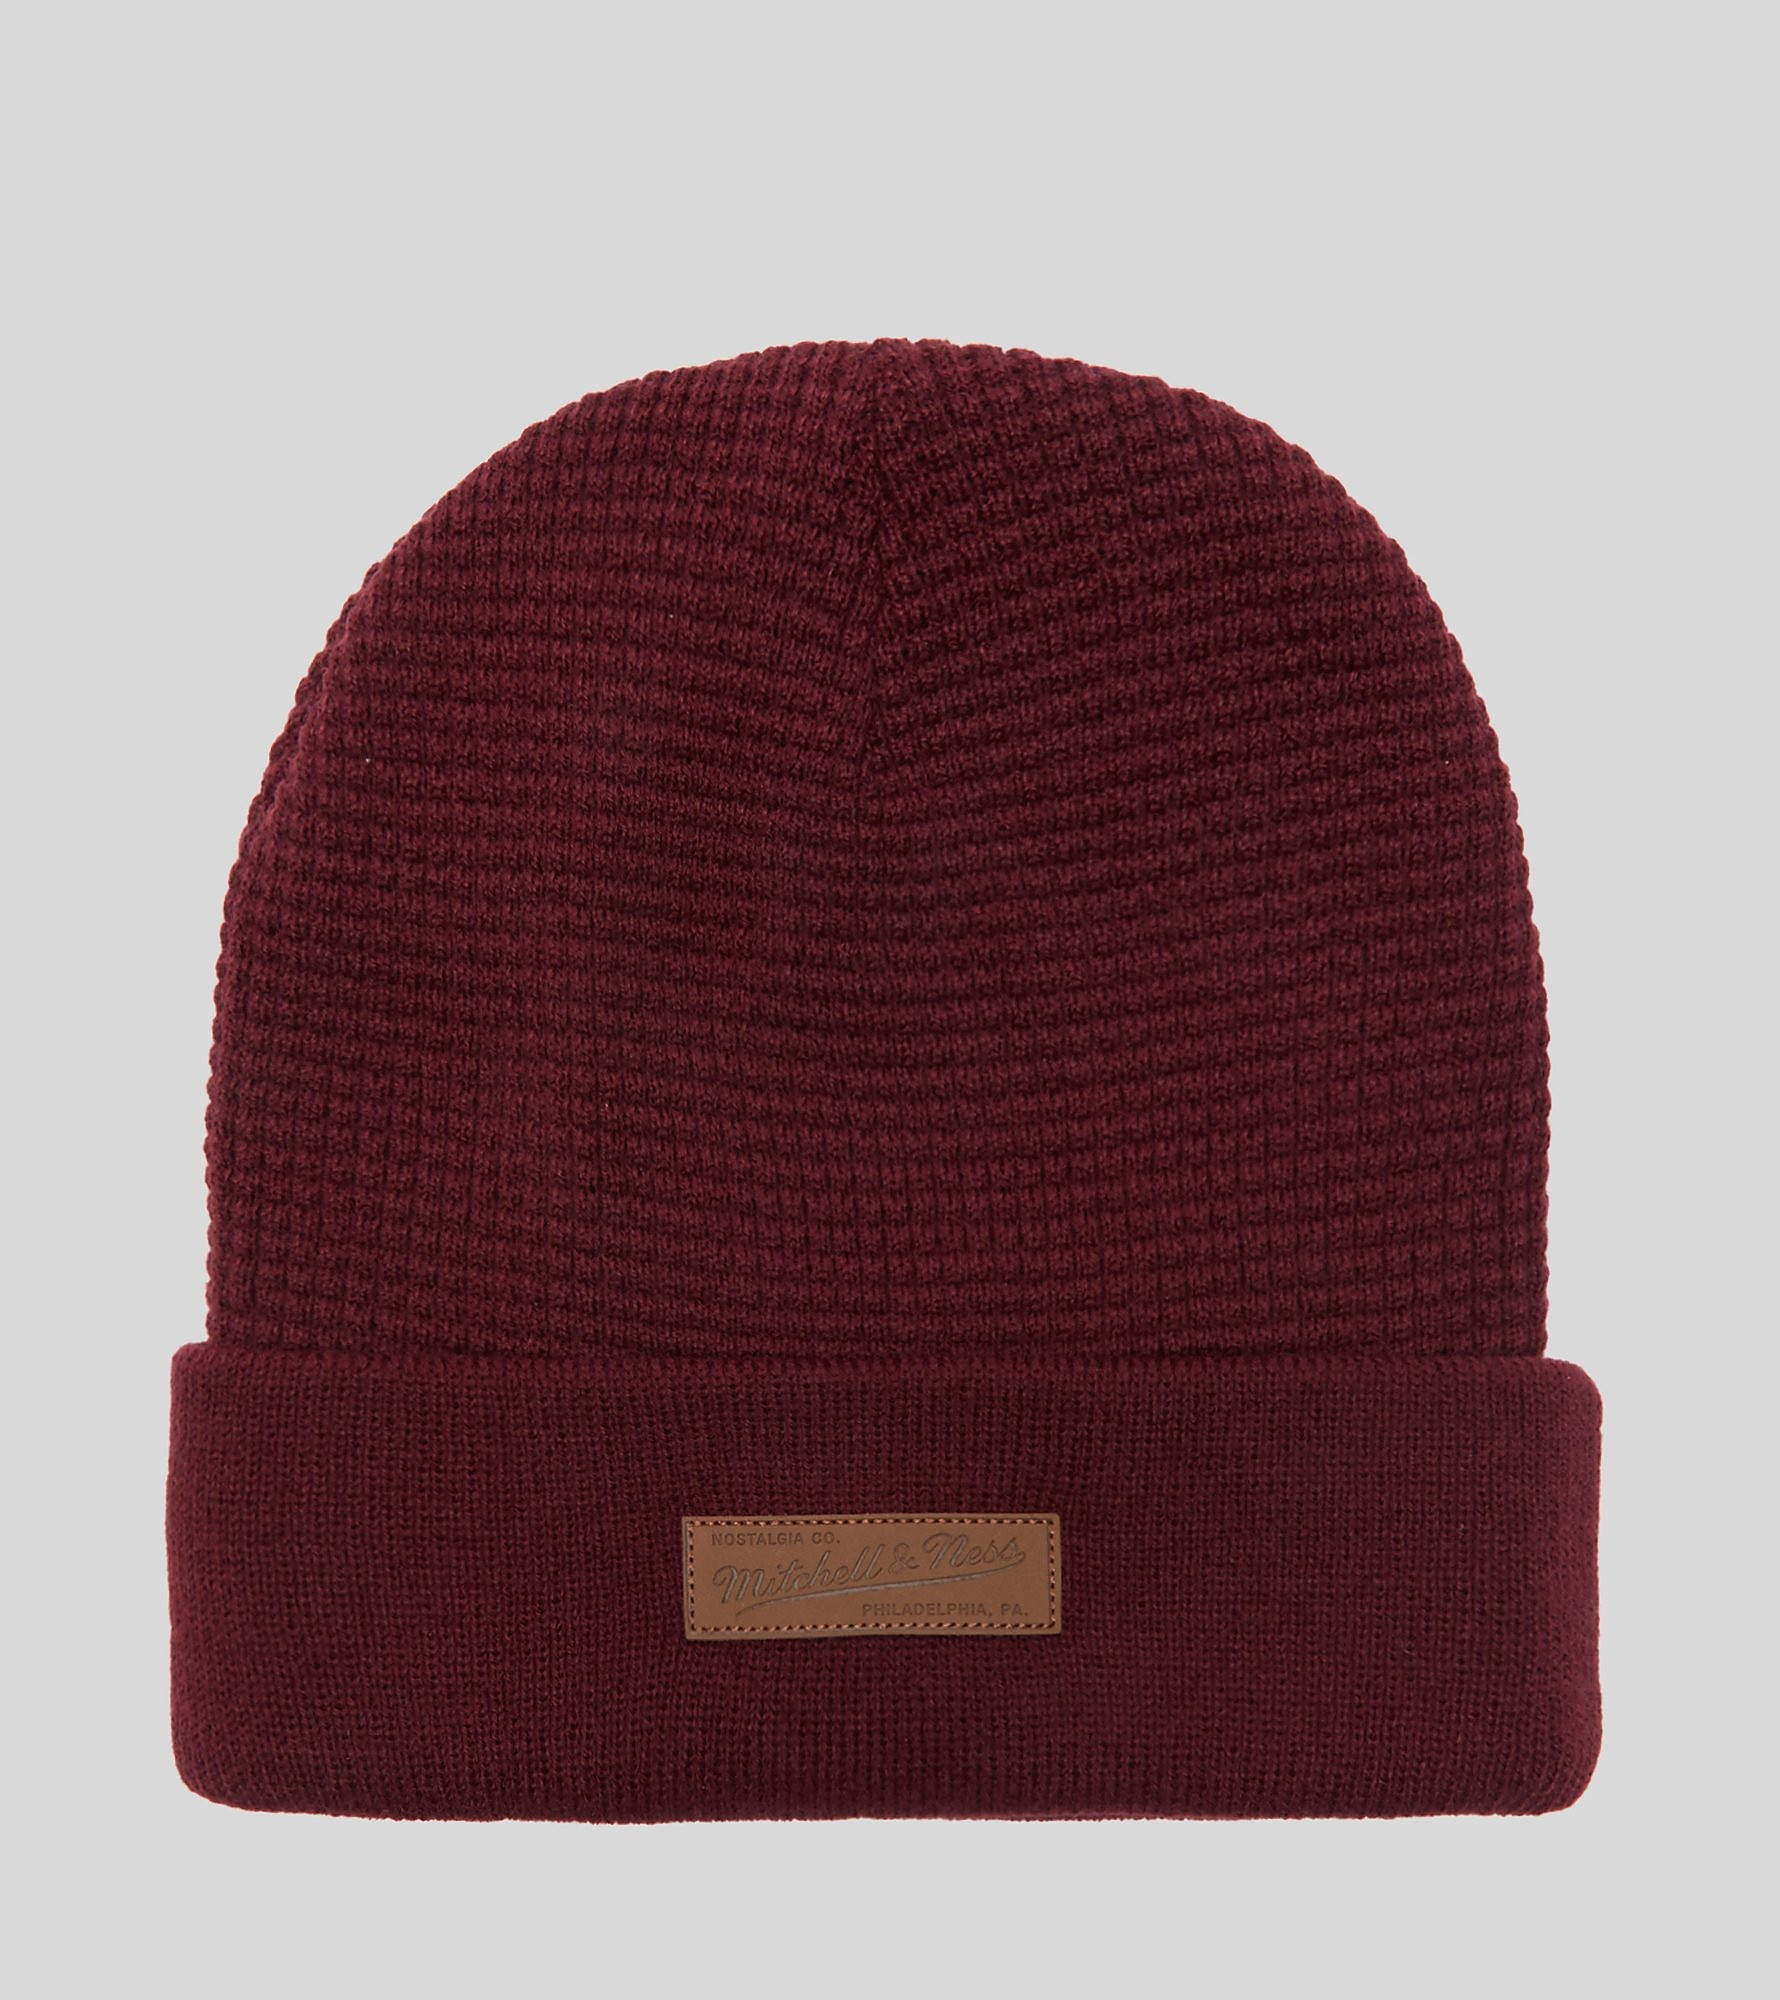 Mitchell & Ness Waffle Beanie Hat - size? Exclusive